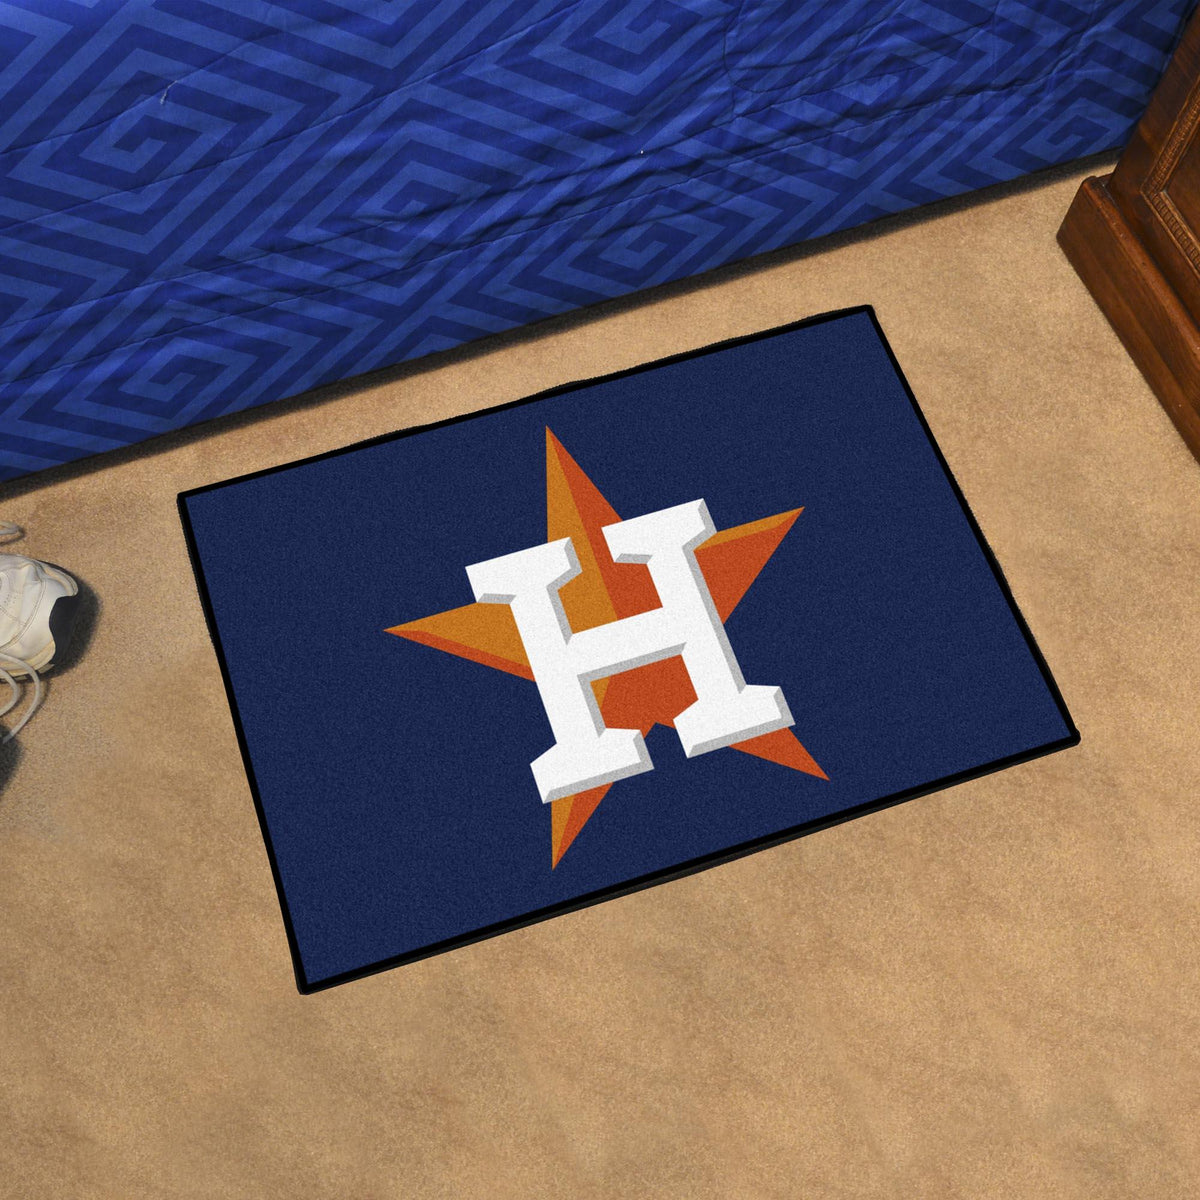 MLB - Starter Mat MLB Mats, Rectangular Mats, Starter Mat, MLB, Home Fan Mats Houston Astros